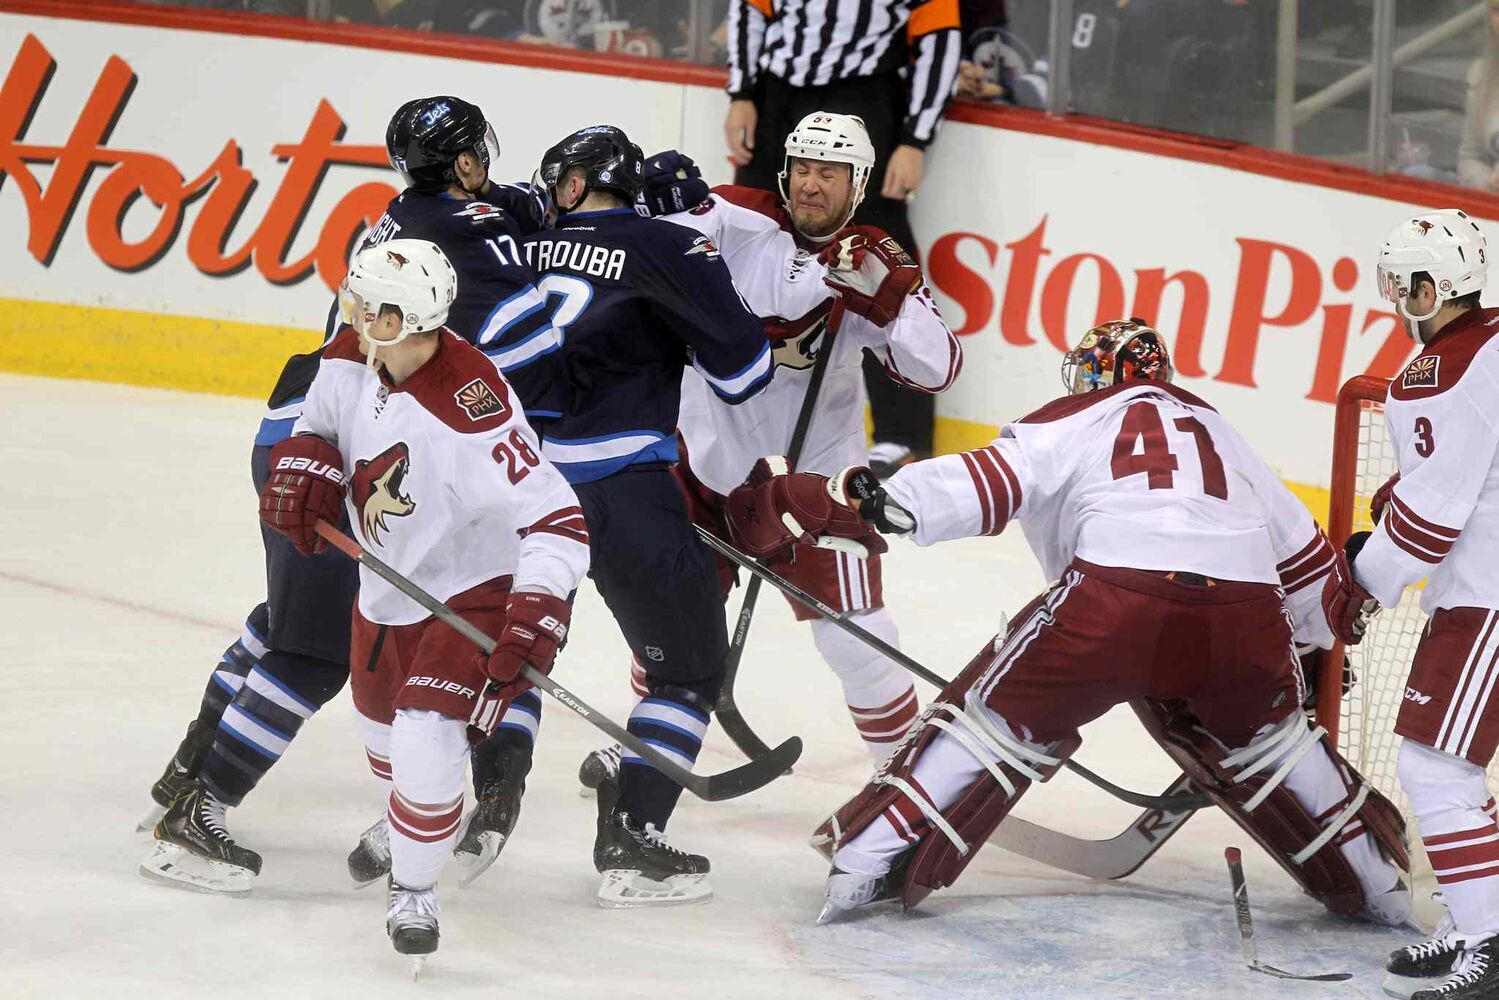 Phoenix Coyotes' Derek Morris (53) fights with Winnipeg Jets players during the first period of Thursday's game. (Ruth Bonneville / Winnipeg Free Press)